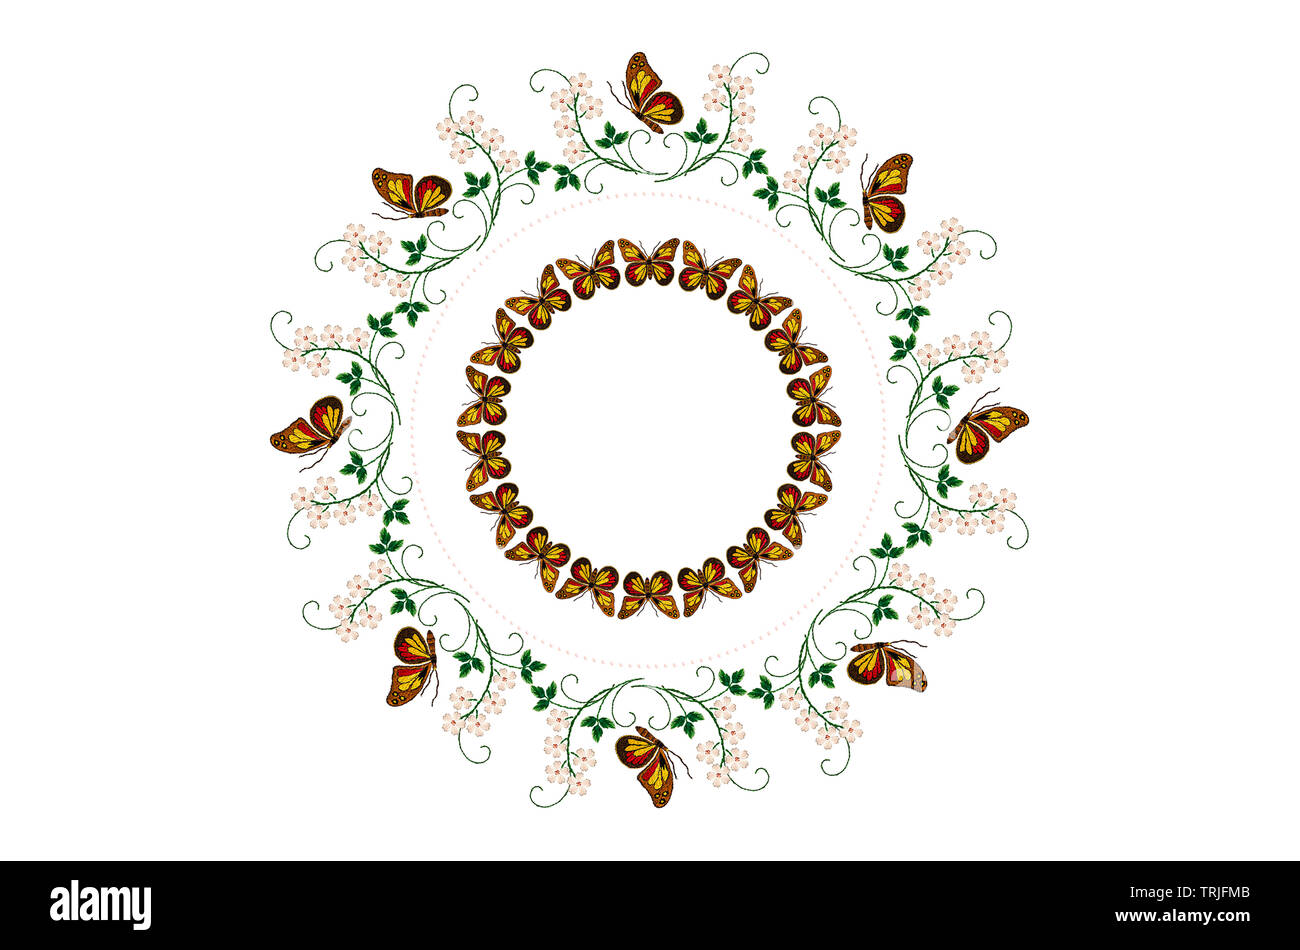 Wreath of embroidered  butterflies on the stems with leaves and white flowers in  mid of a round frame of beads and wreath of butterflies on white bac - Stock Image